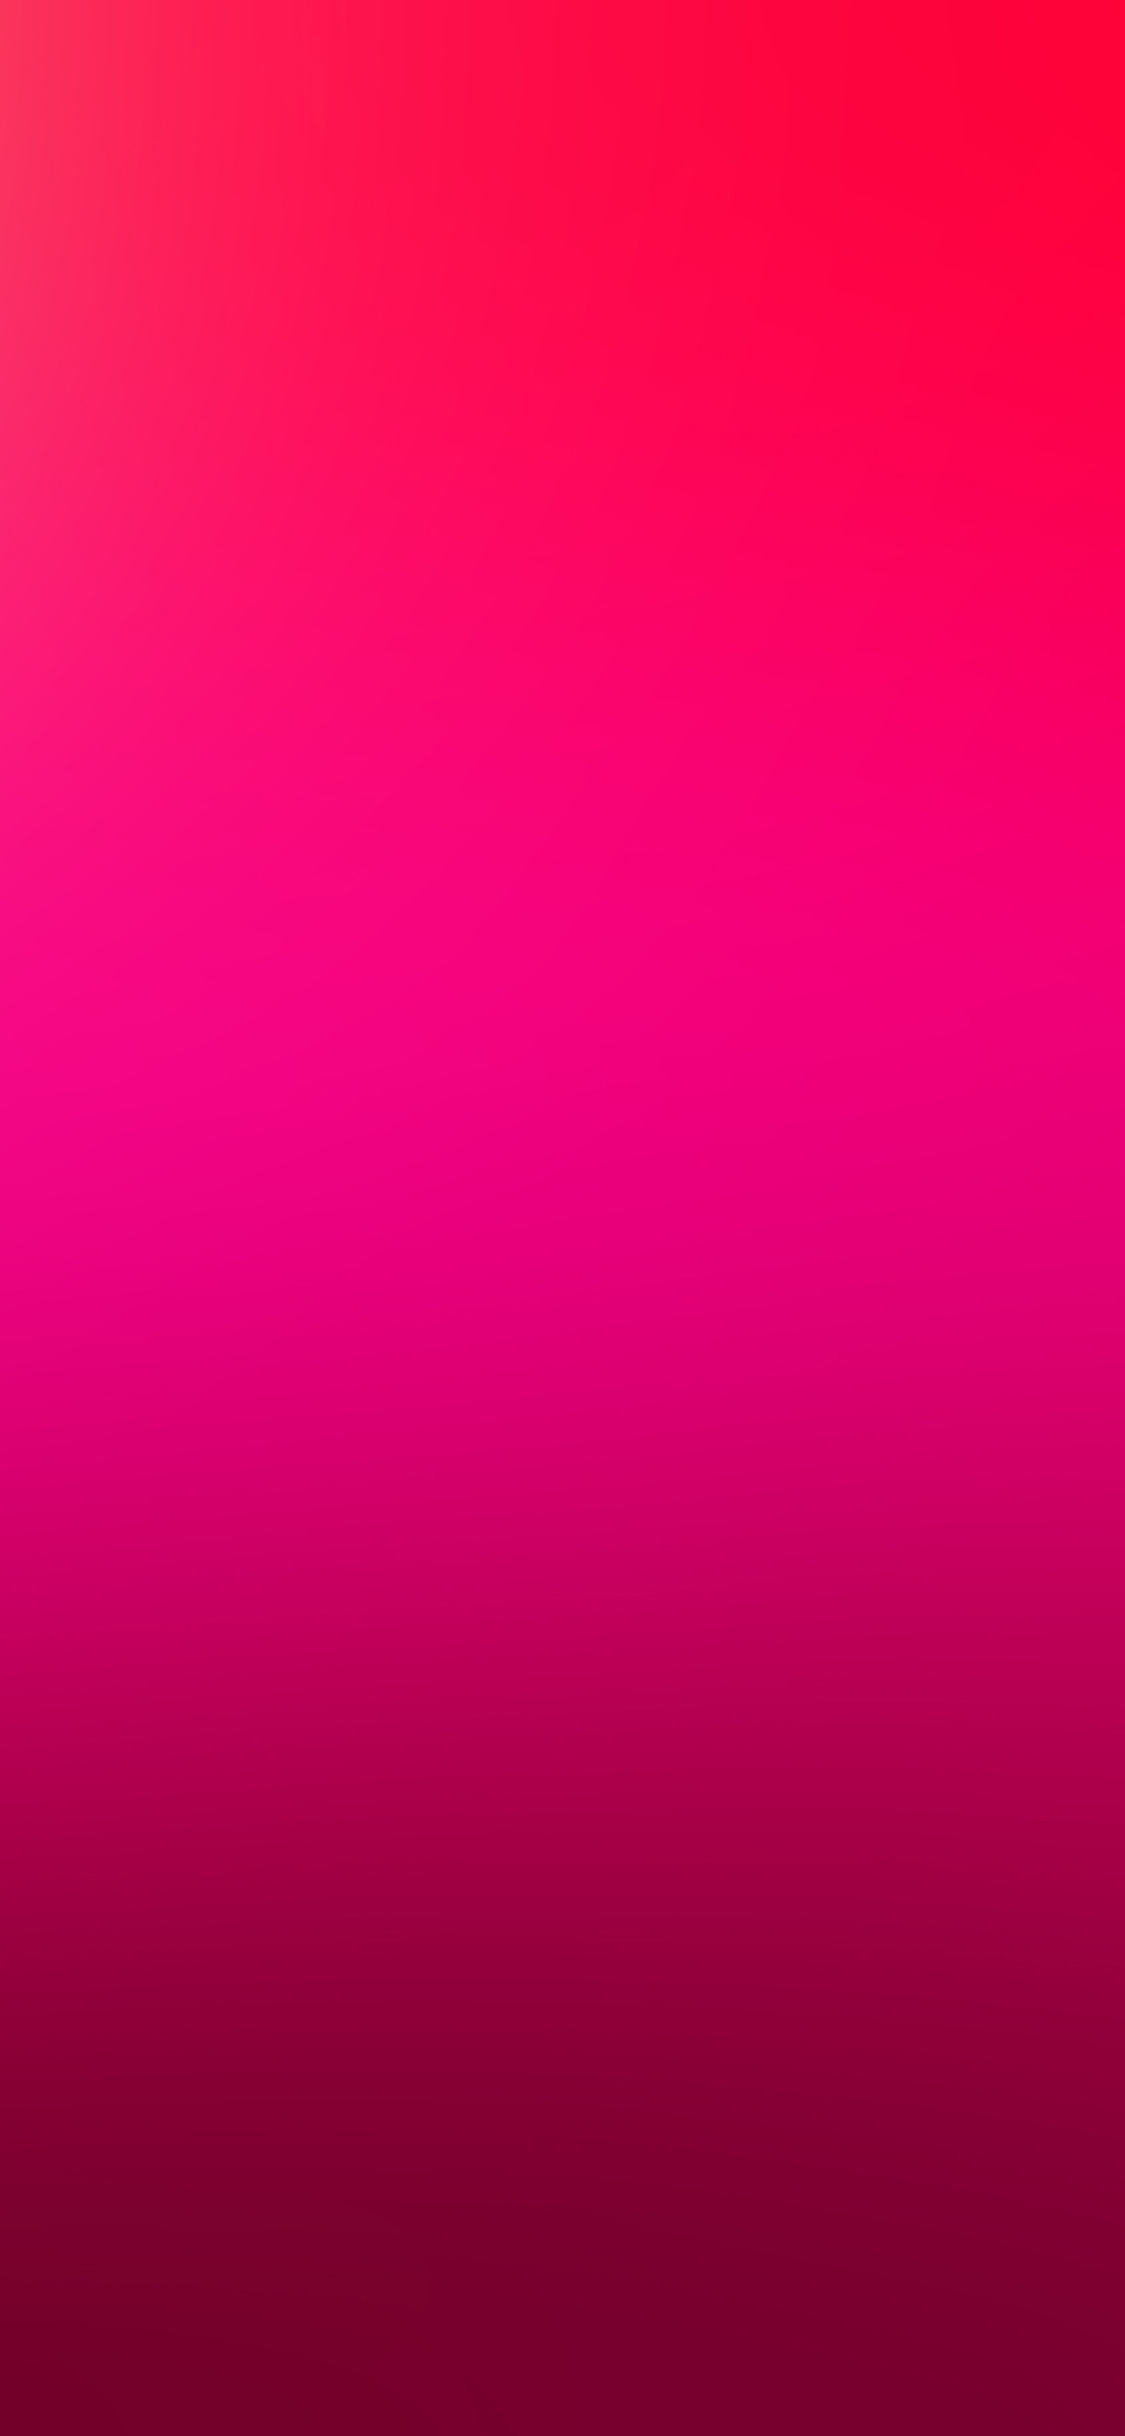 iPhoneXpapers.com-Apple-iPhone-wallpaper-sd44-my-heart-on-fire-gradation-blur